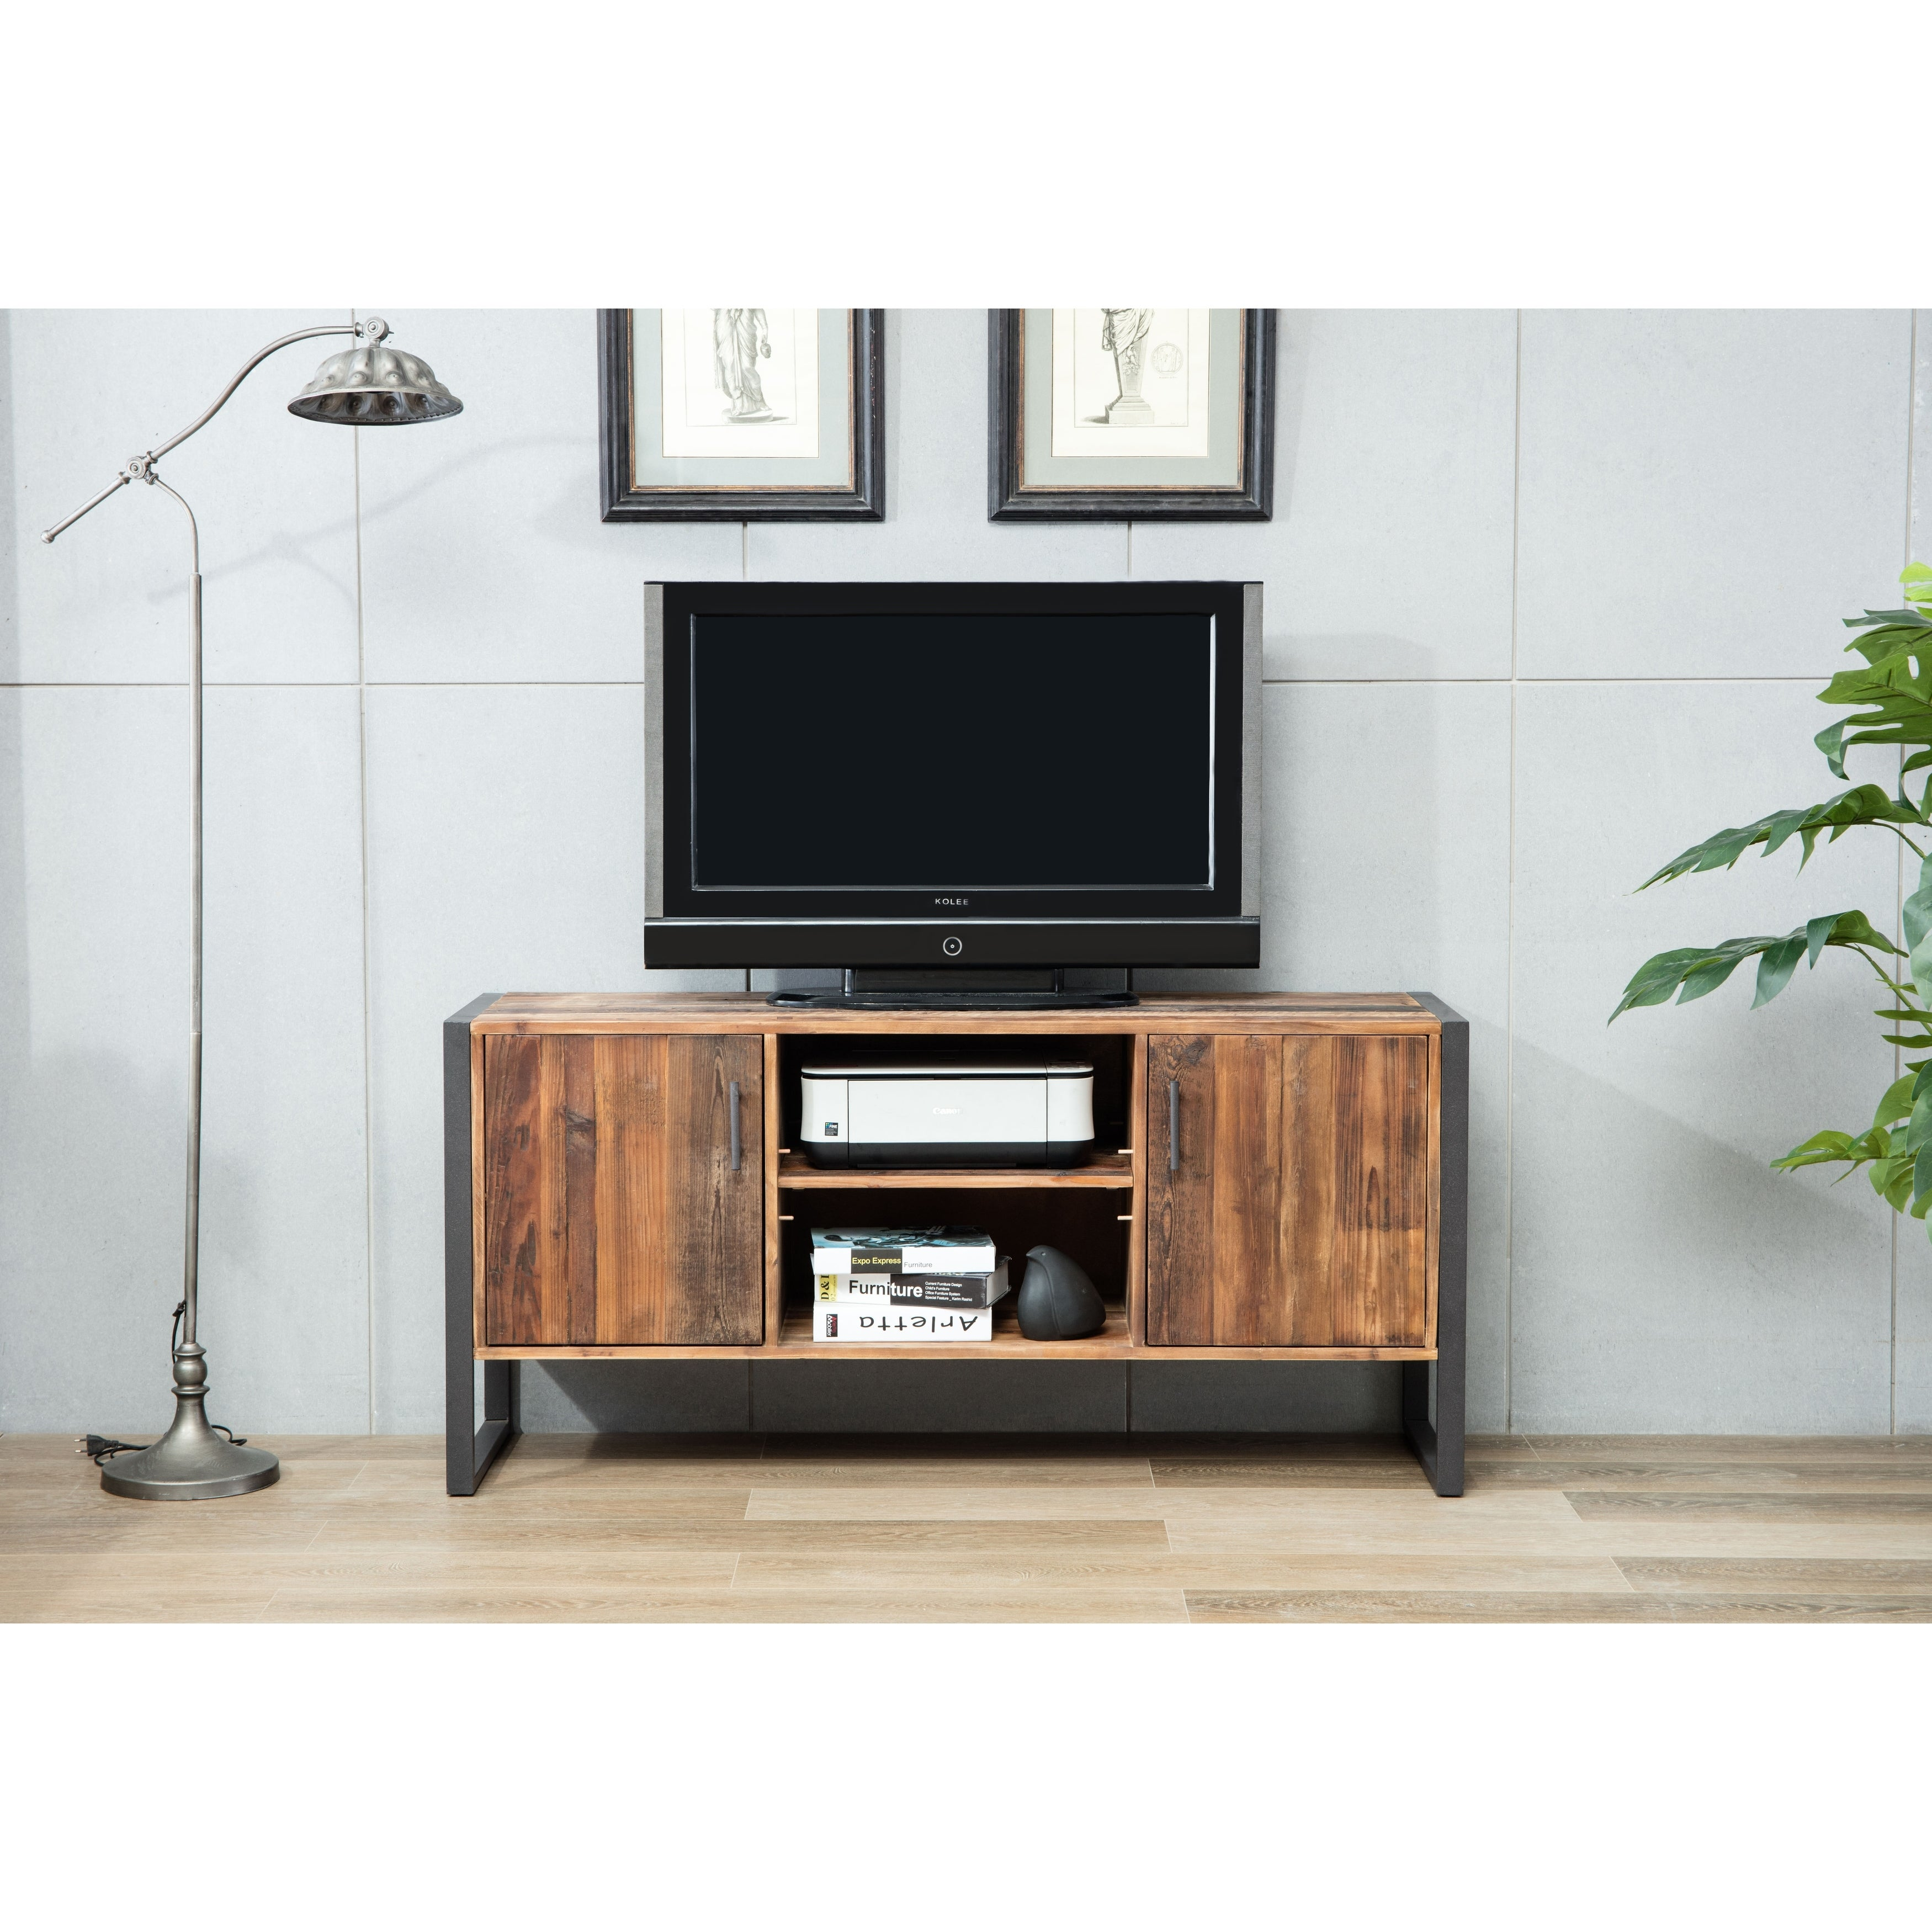 Shop Ruffalo Urban Rustic Wood And Metal Tv Media Console On Sale